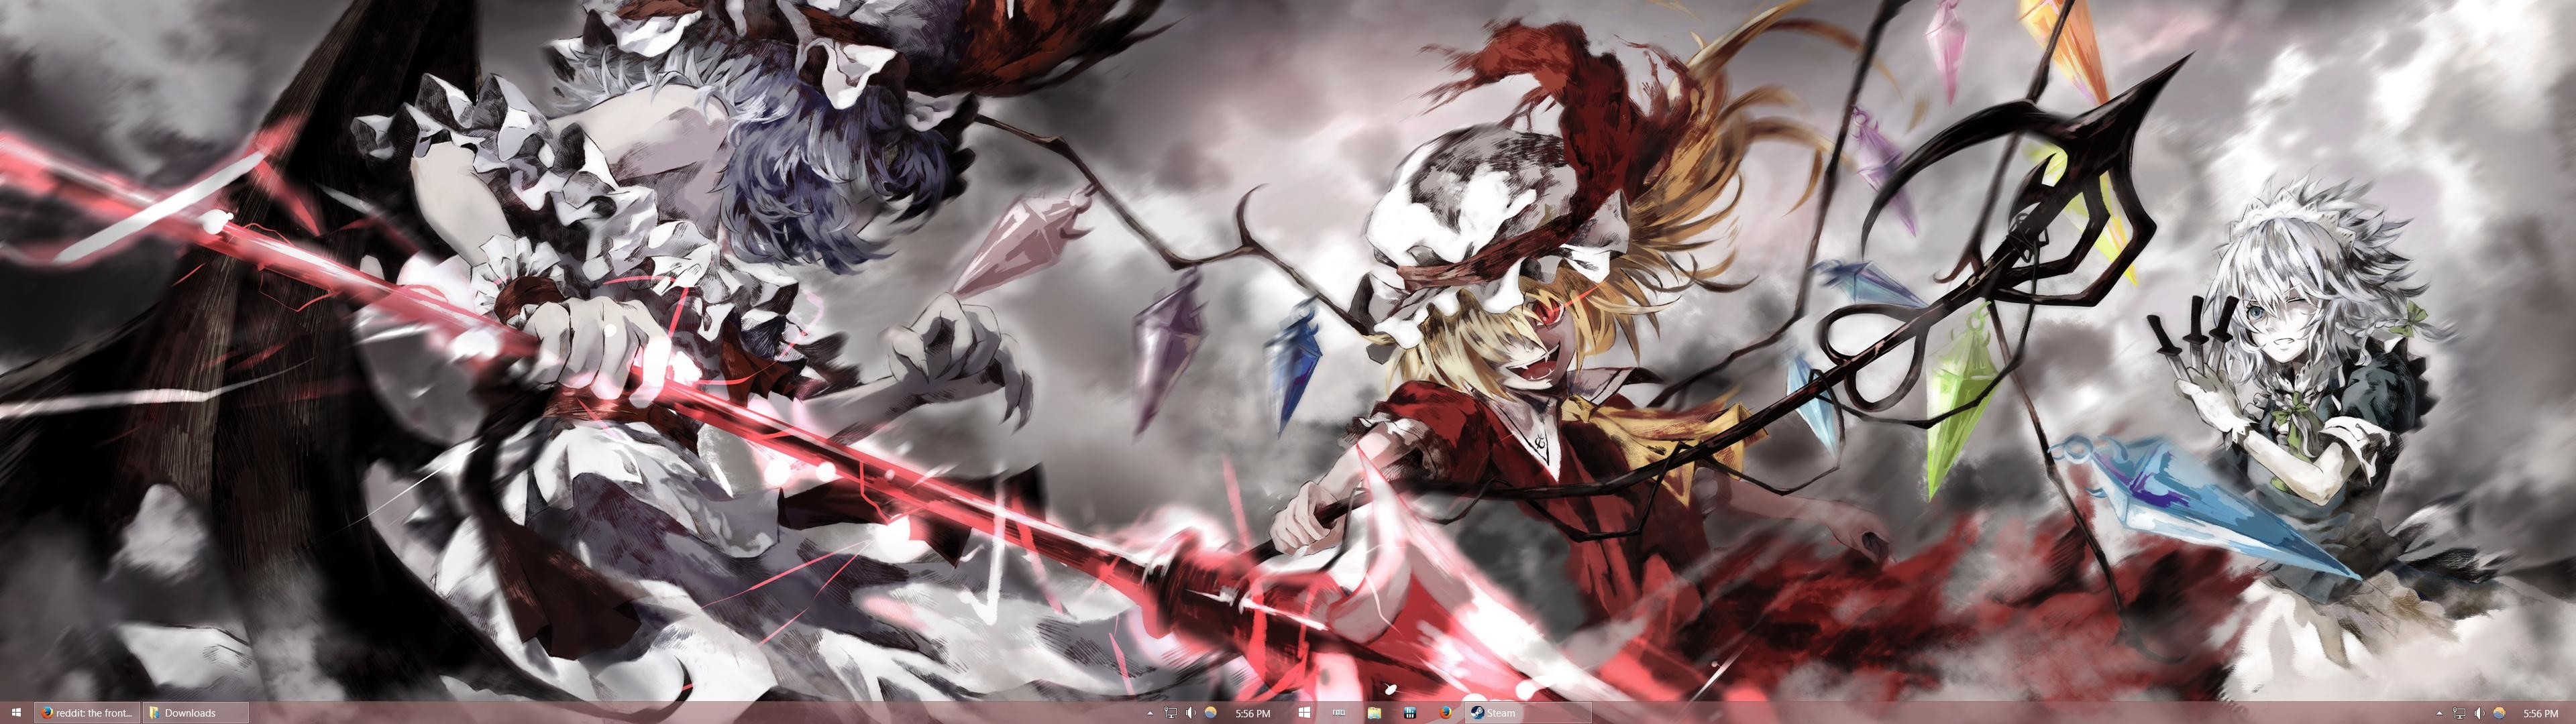 Anyone have Touhou-related dual screen wallpapers?